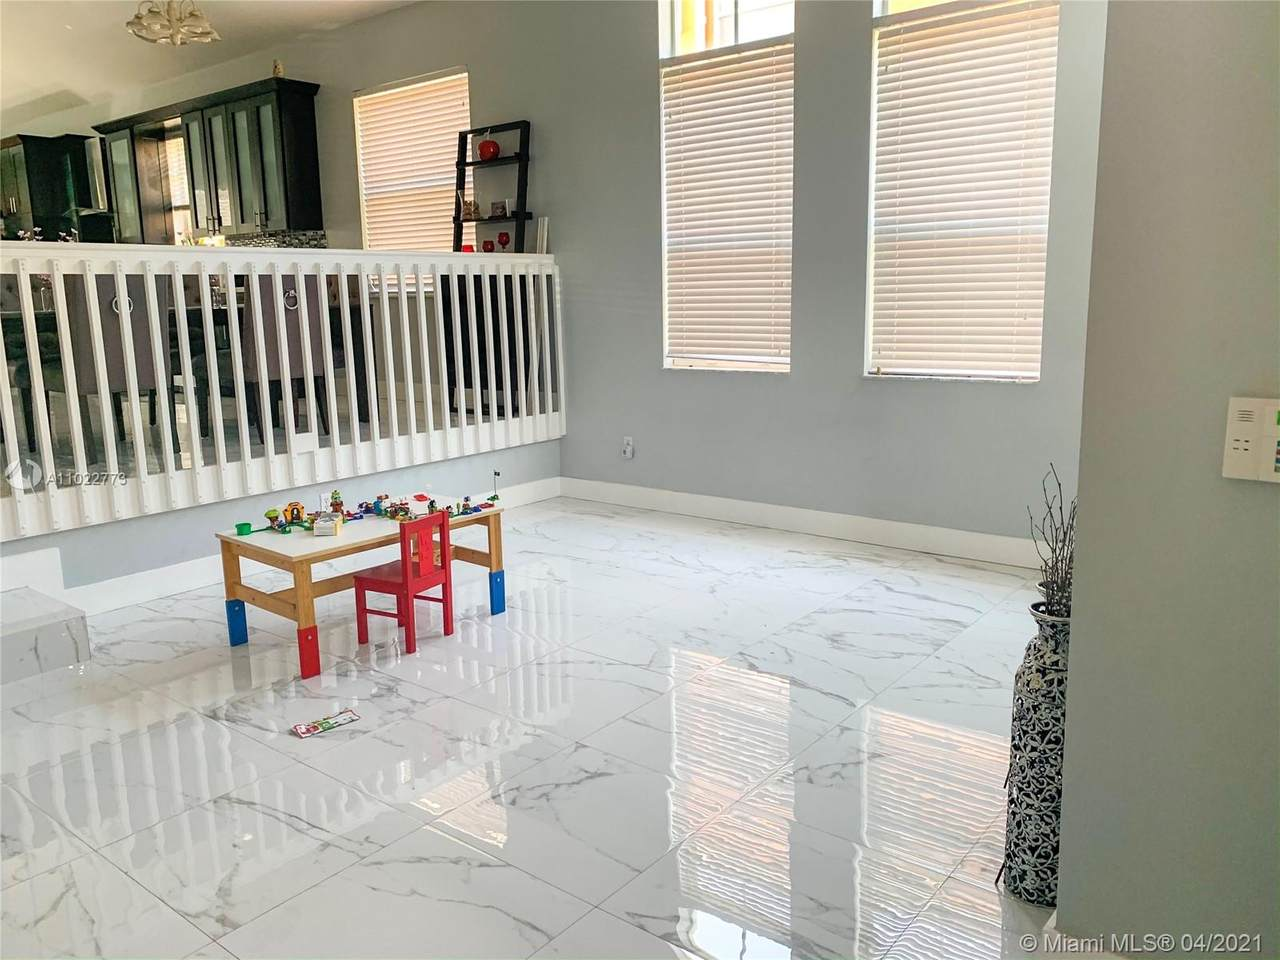 https://bt-photos.global.ssl.fastly.net/miami/orig_boomver_1_A11022773-2.jpg